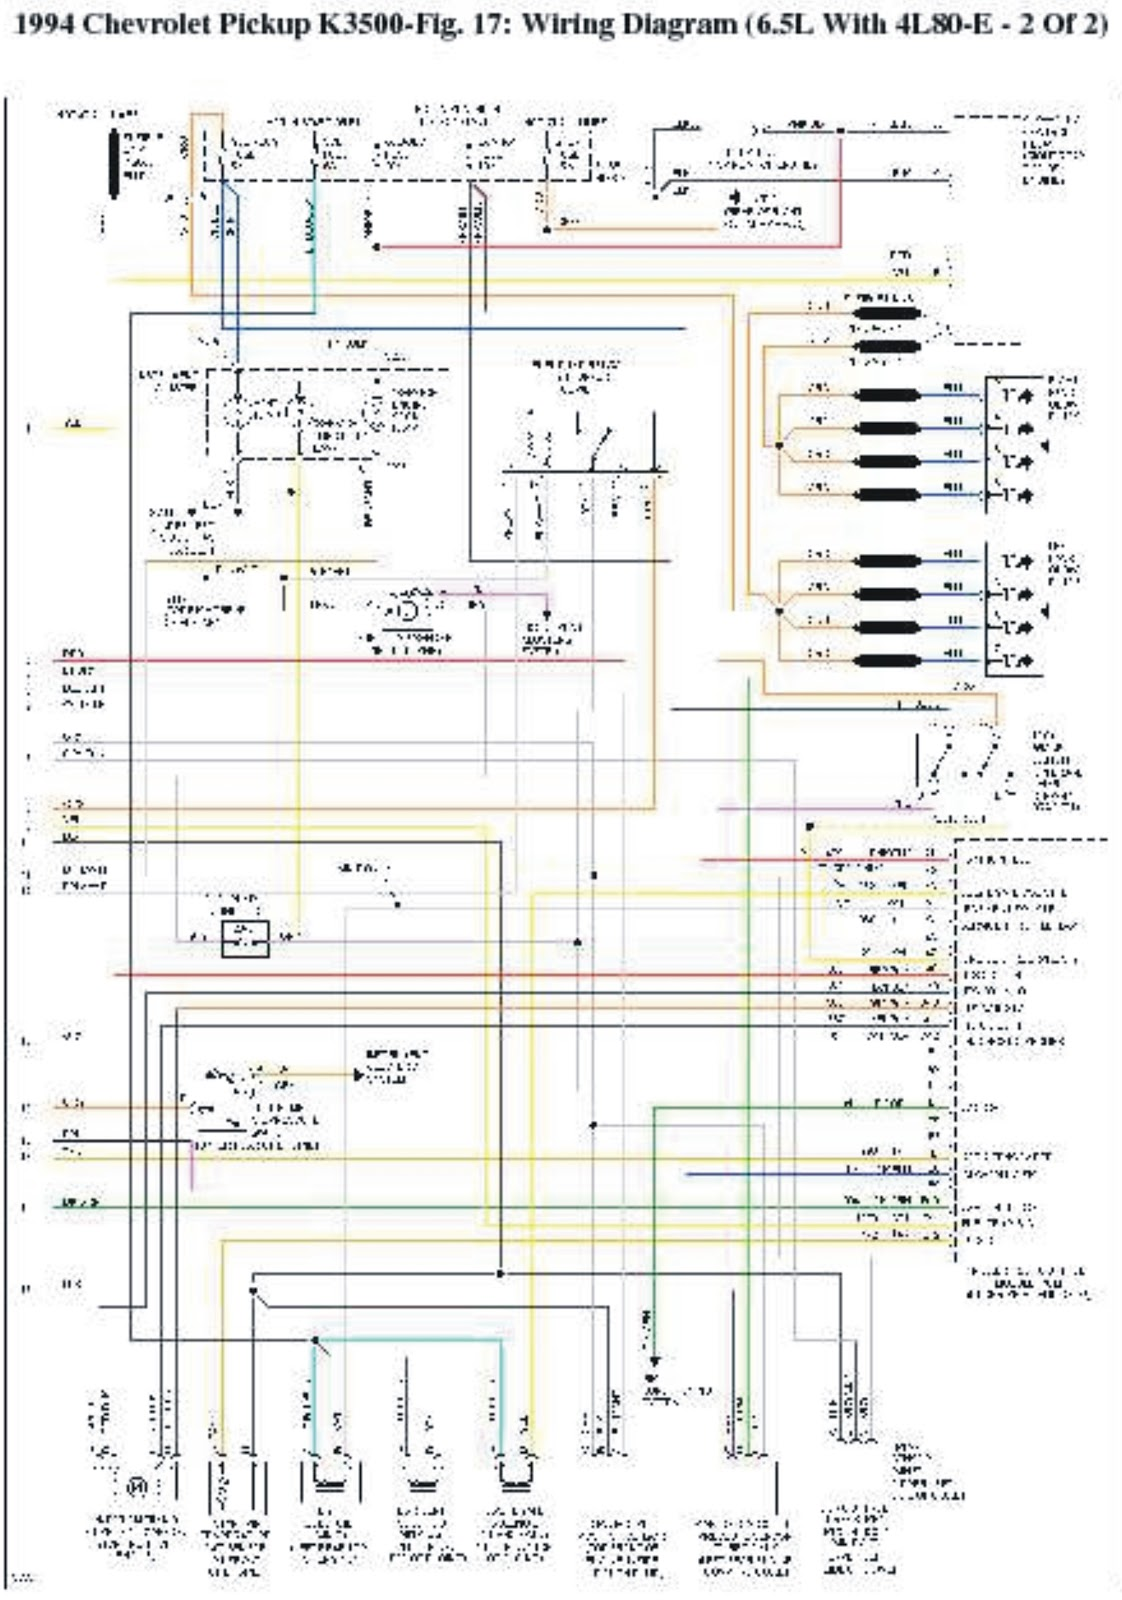 1990 Chevy C1500 Wiring Harness 1500 Books Of Diagram Gmc Sierra Engine K1500